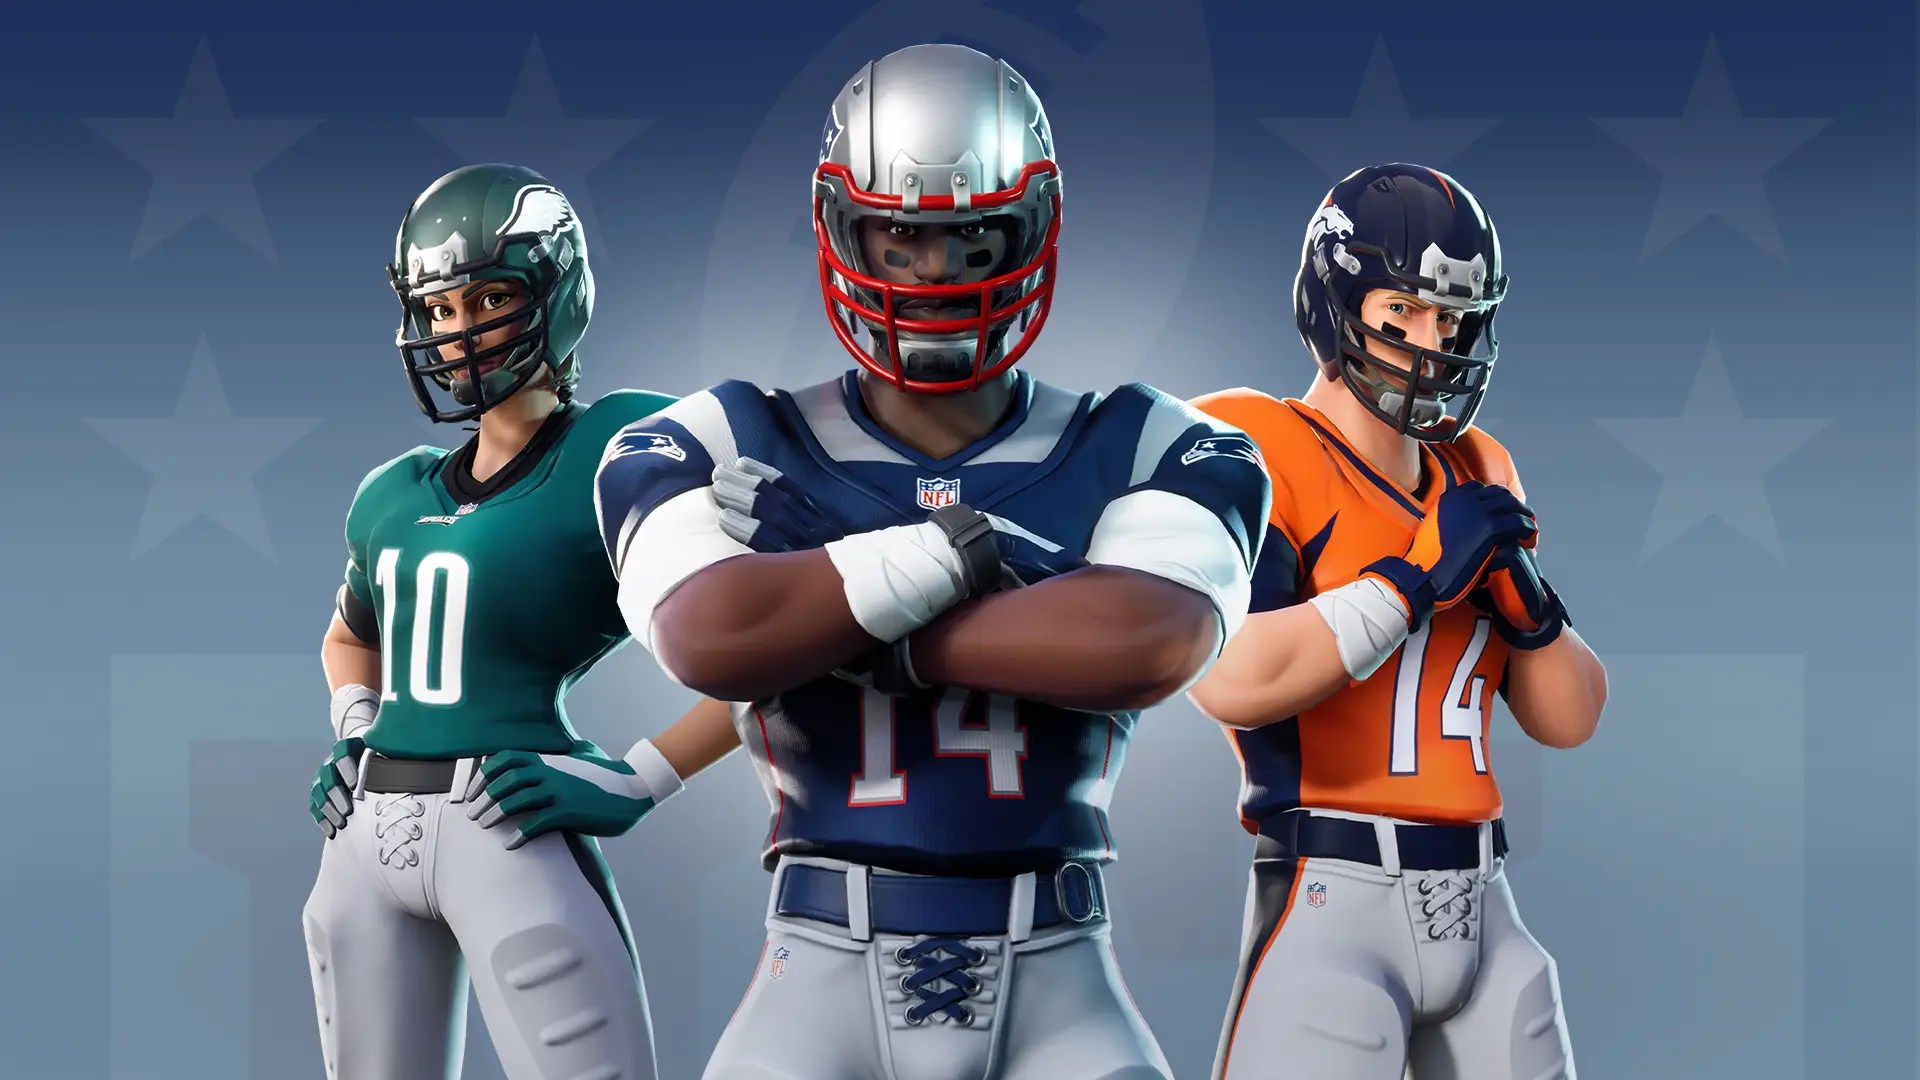 Fortnite Battle Royale Gets NFL Uniforms Business Insider